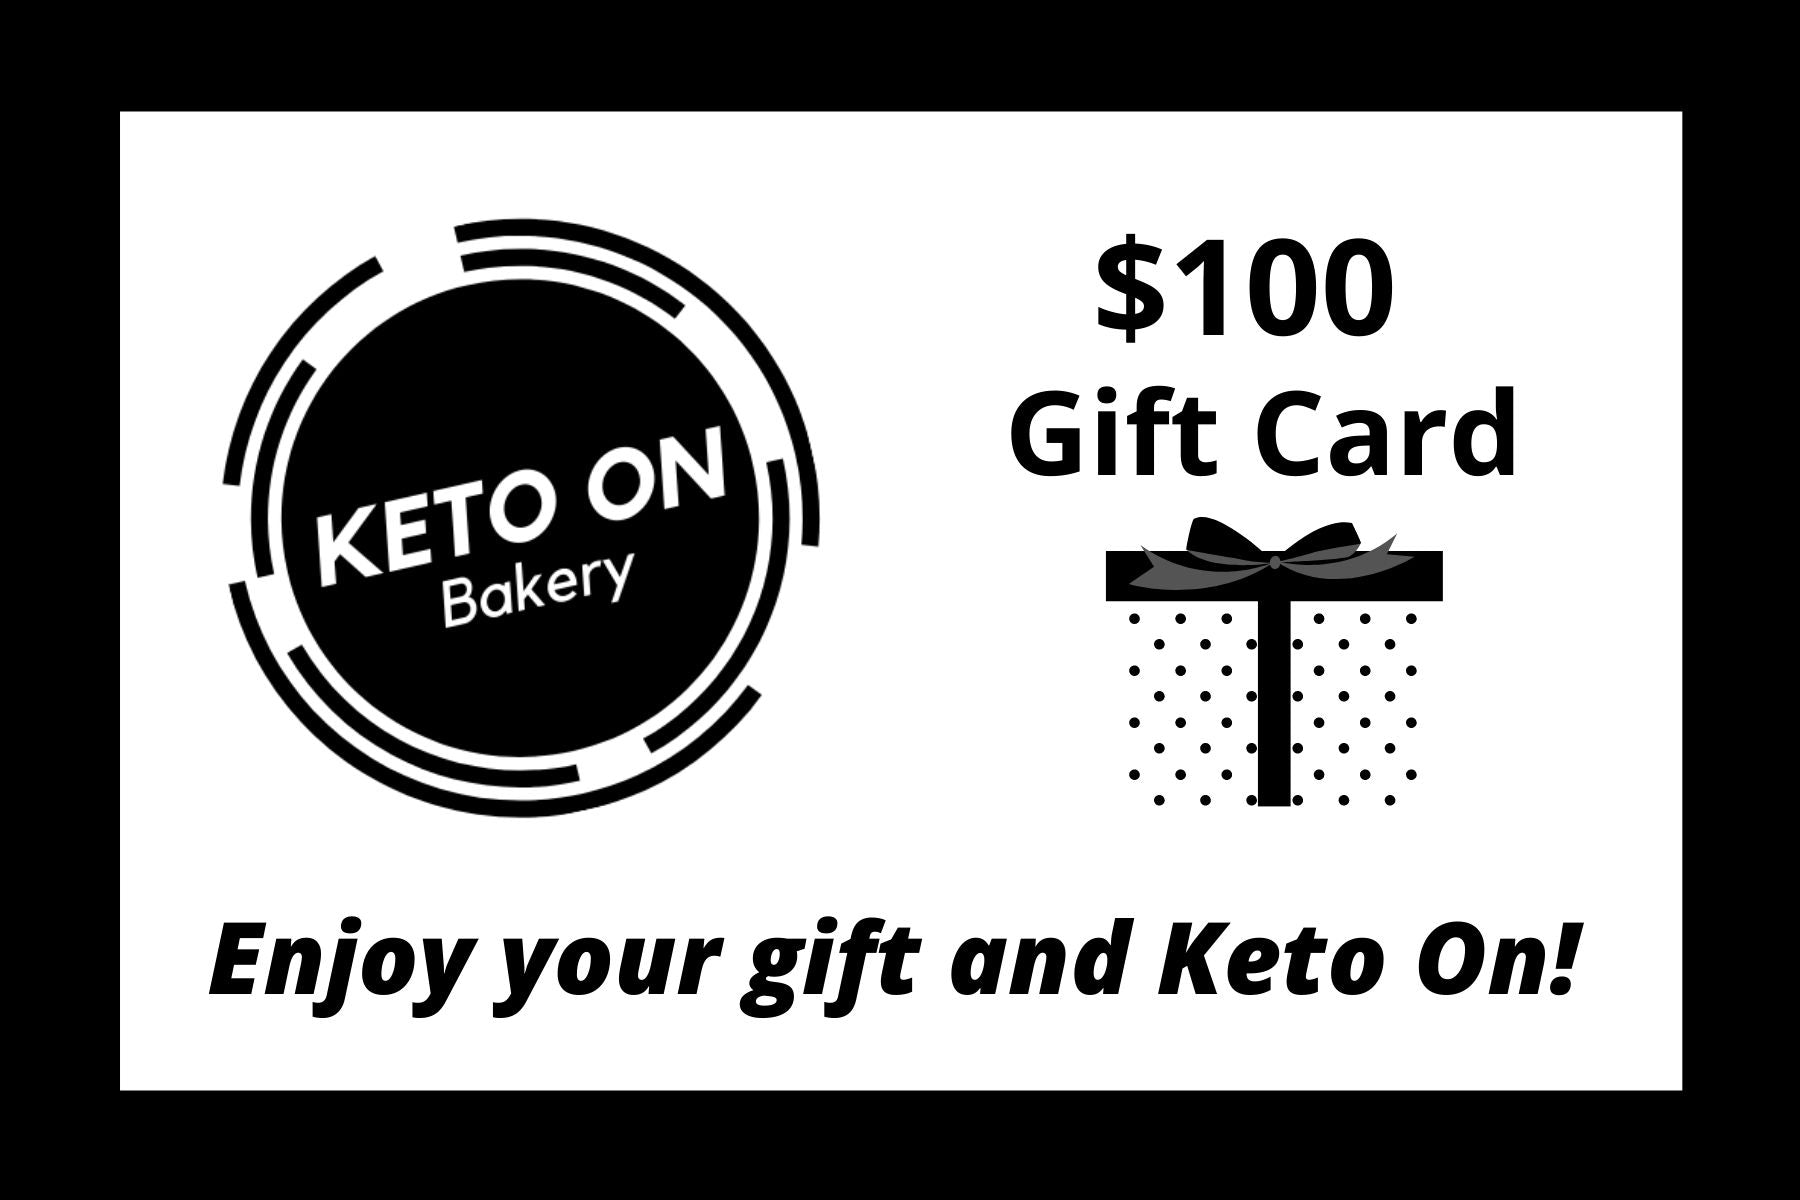 Keto On Bakery, $100 gift card, low carb, sugar free, ketogenic